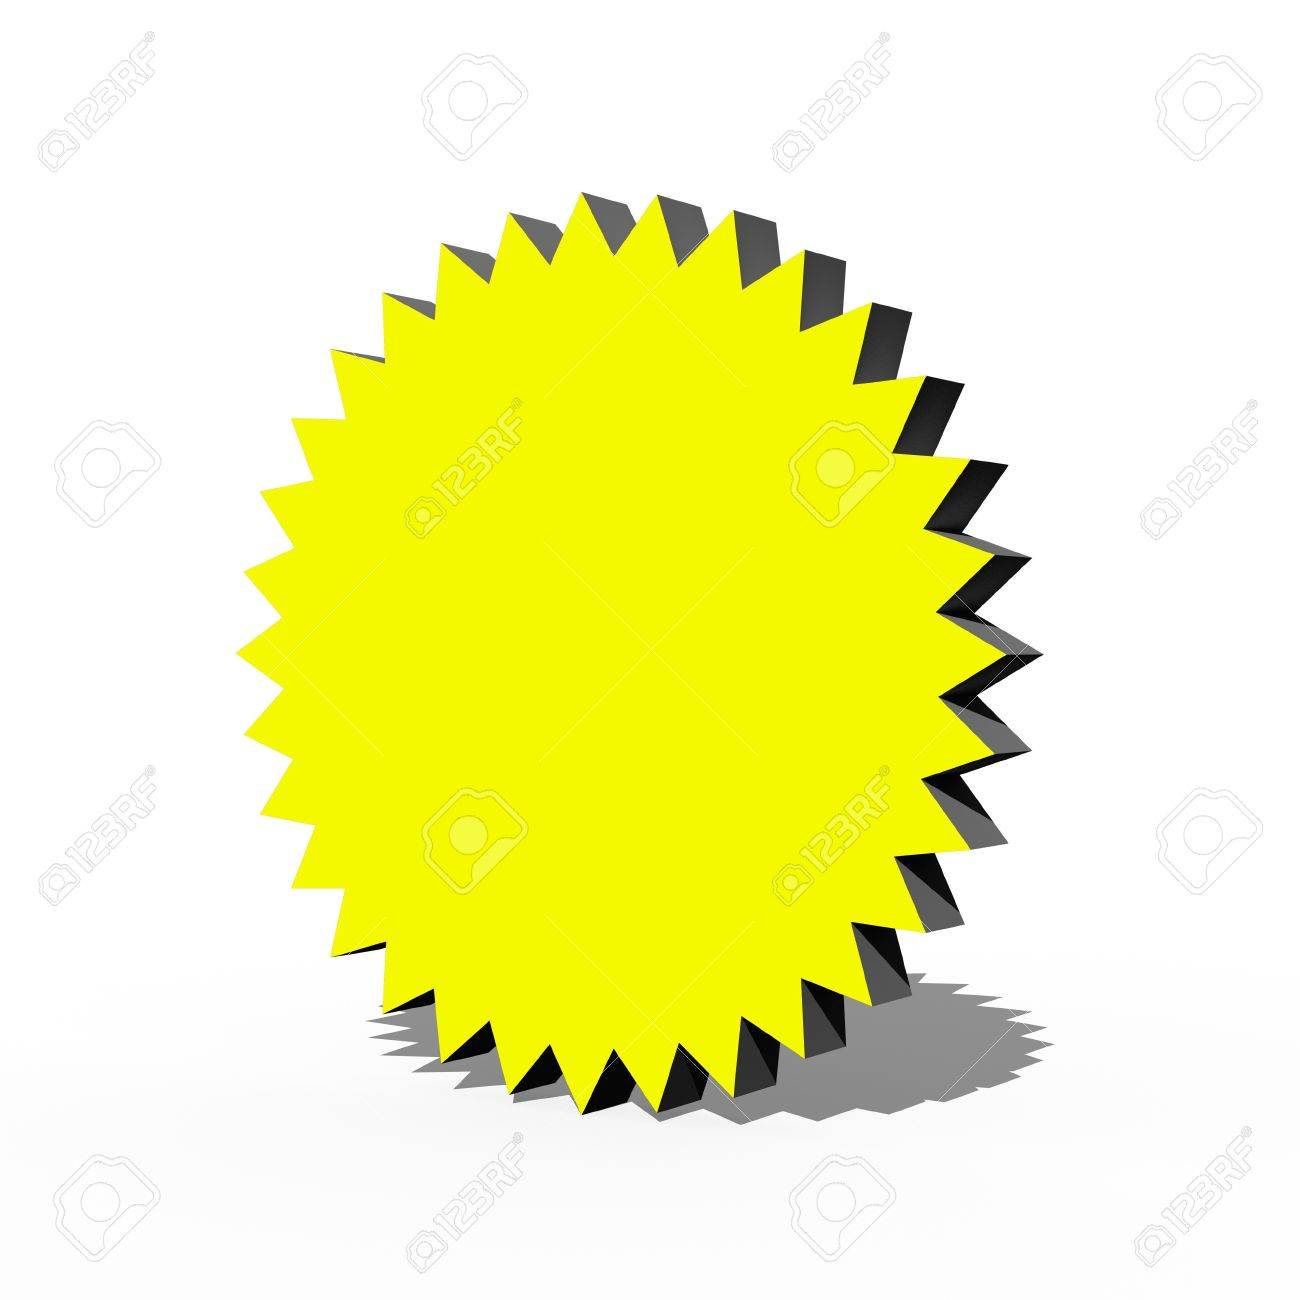 A 3d multi point star on a white background